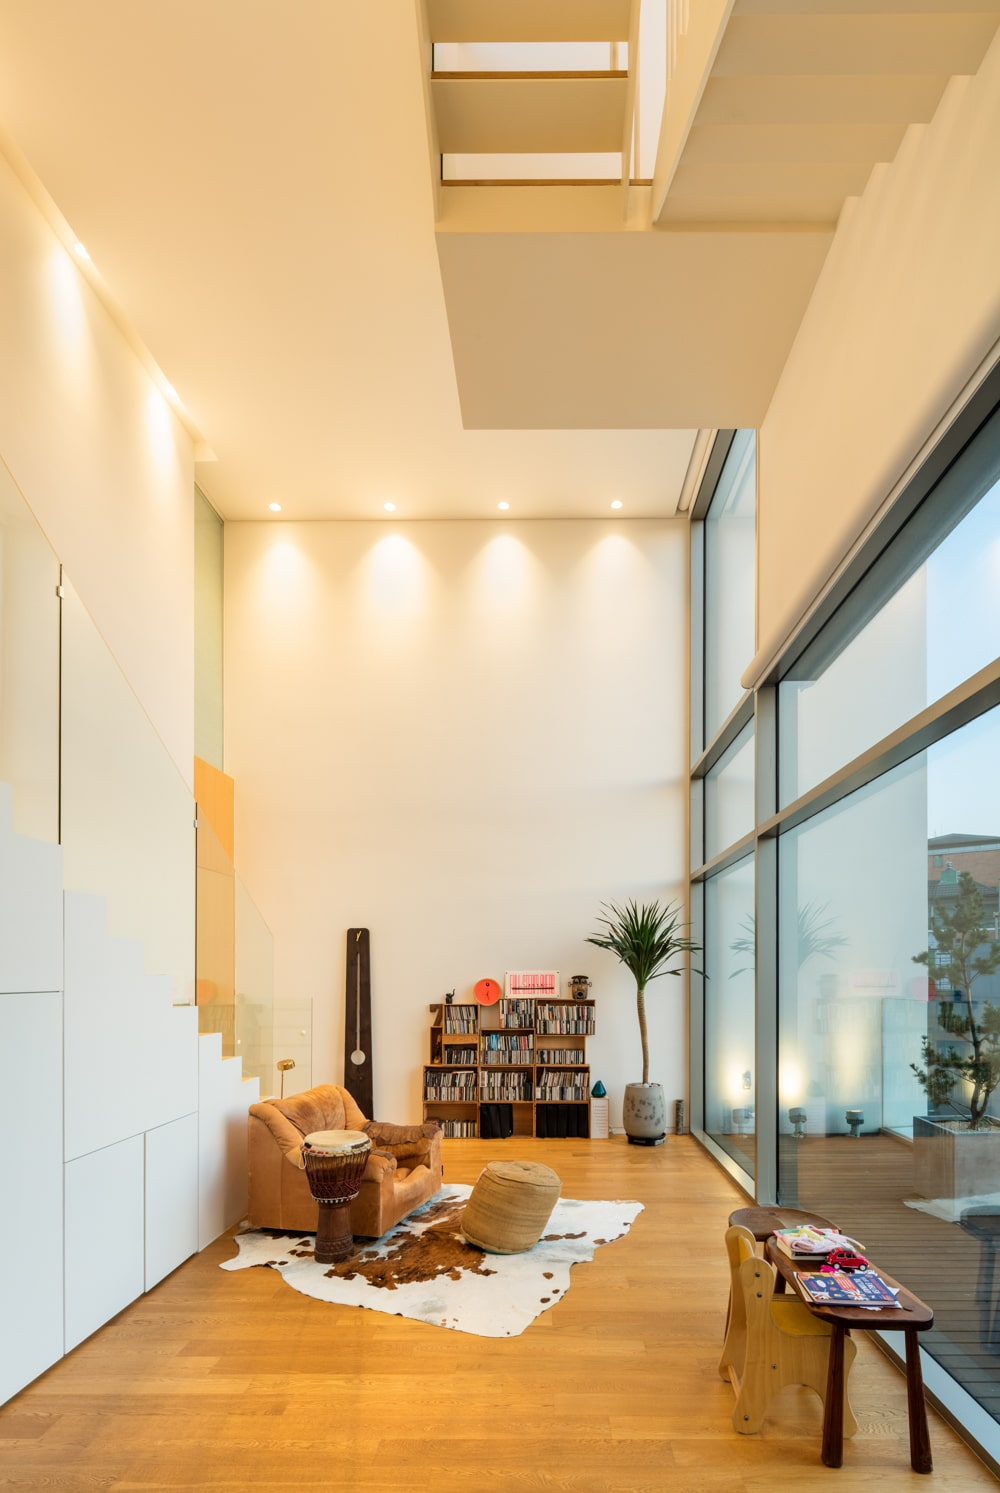 The interior has a tall ceiling with beige walls that match and complemented by recessed lights.